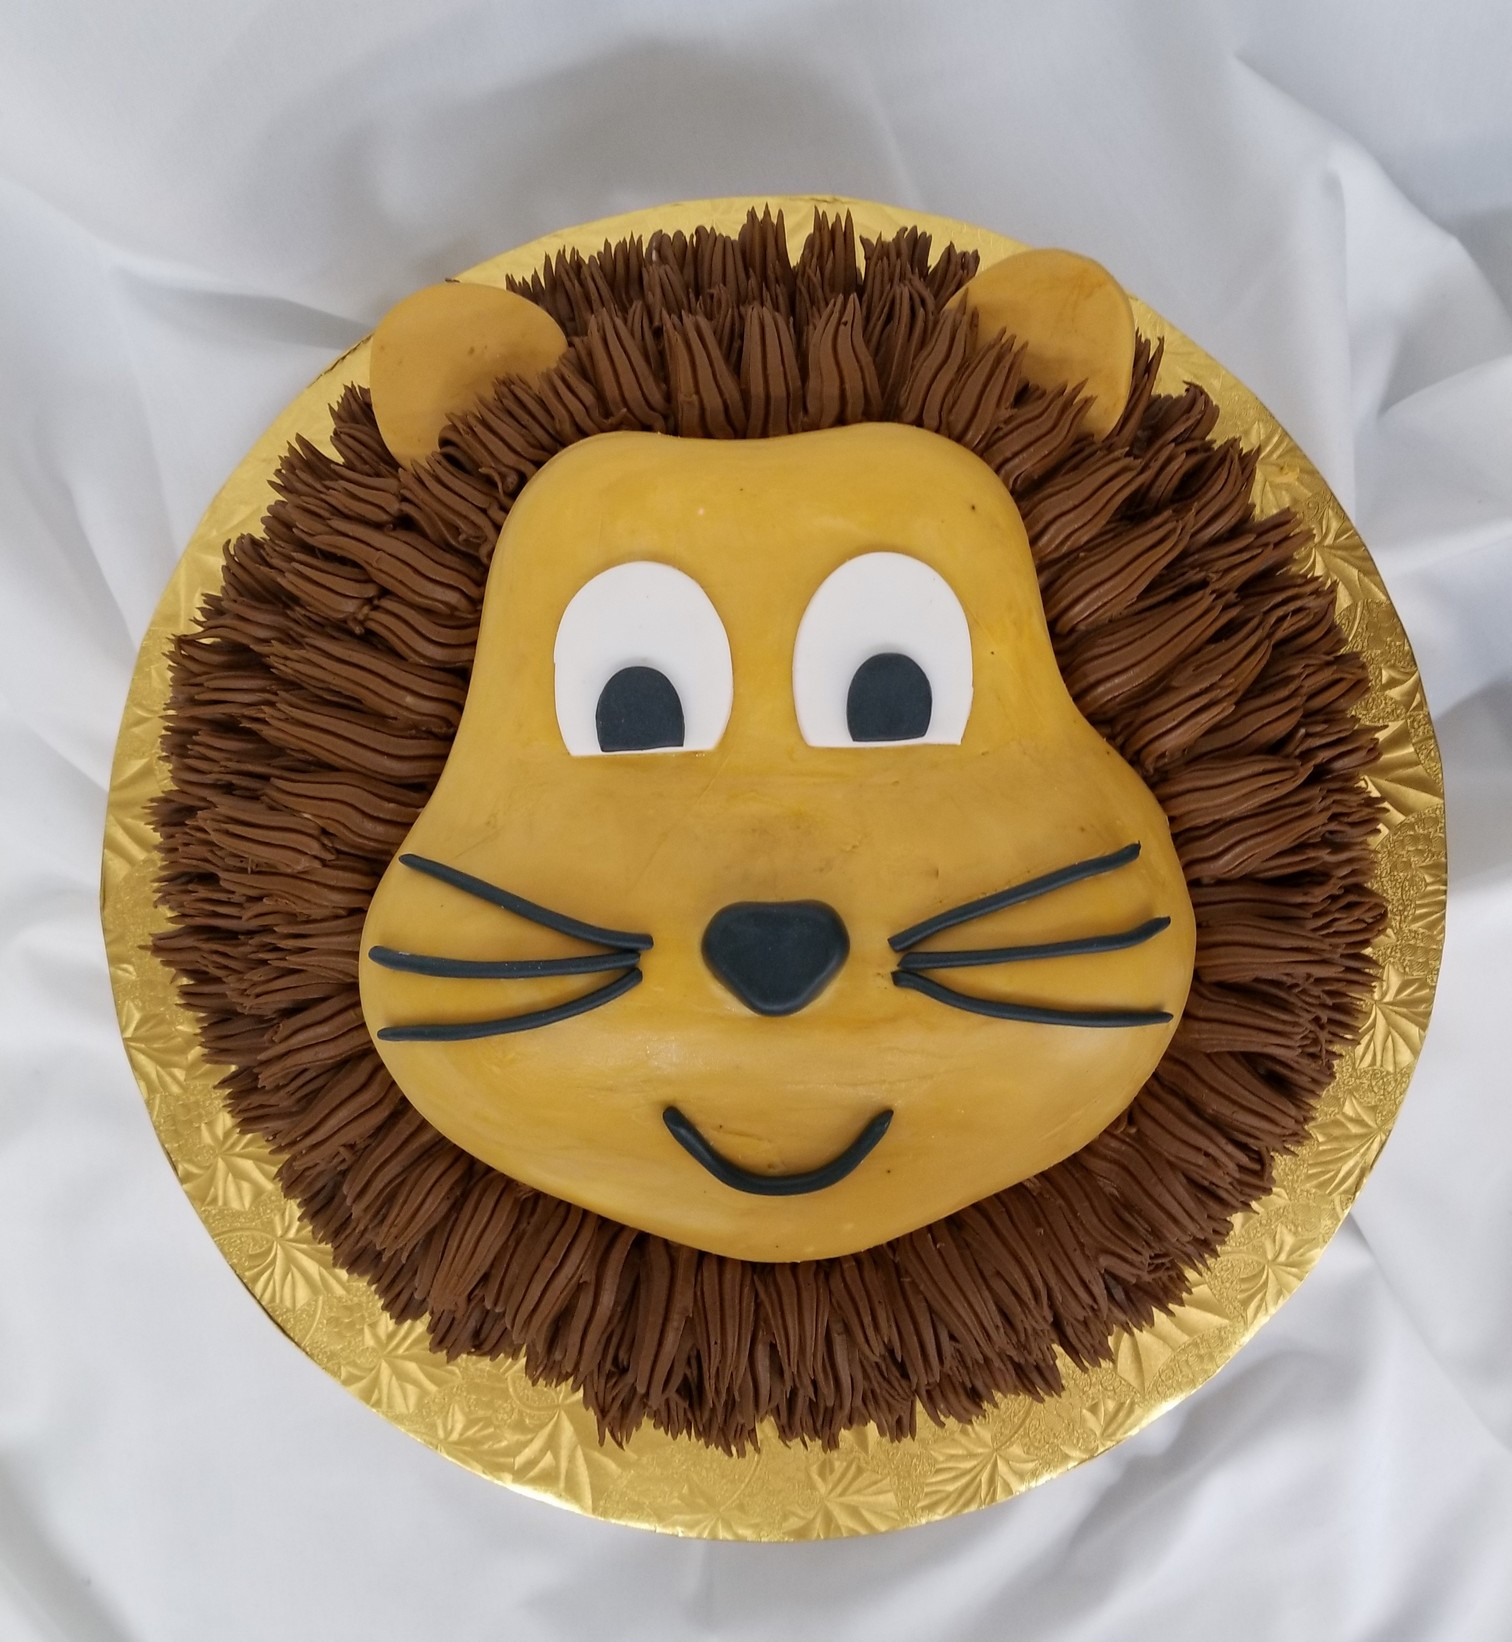 Lions Cakes